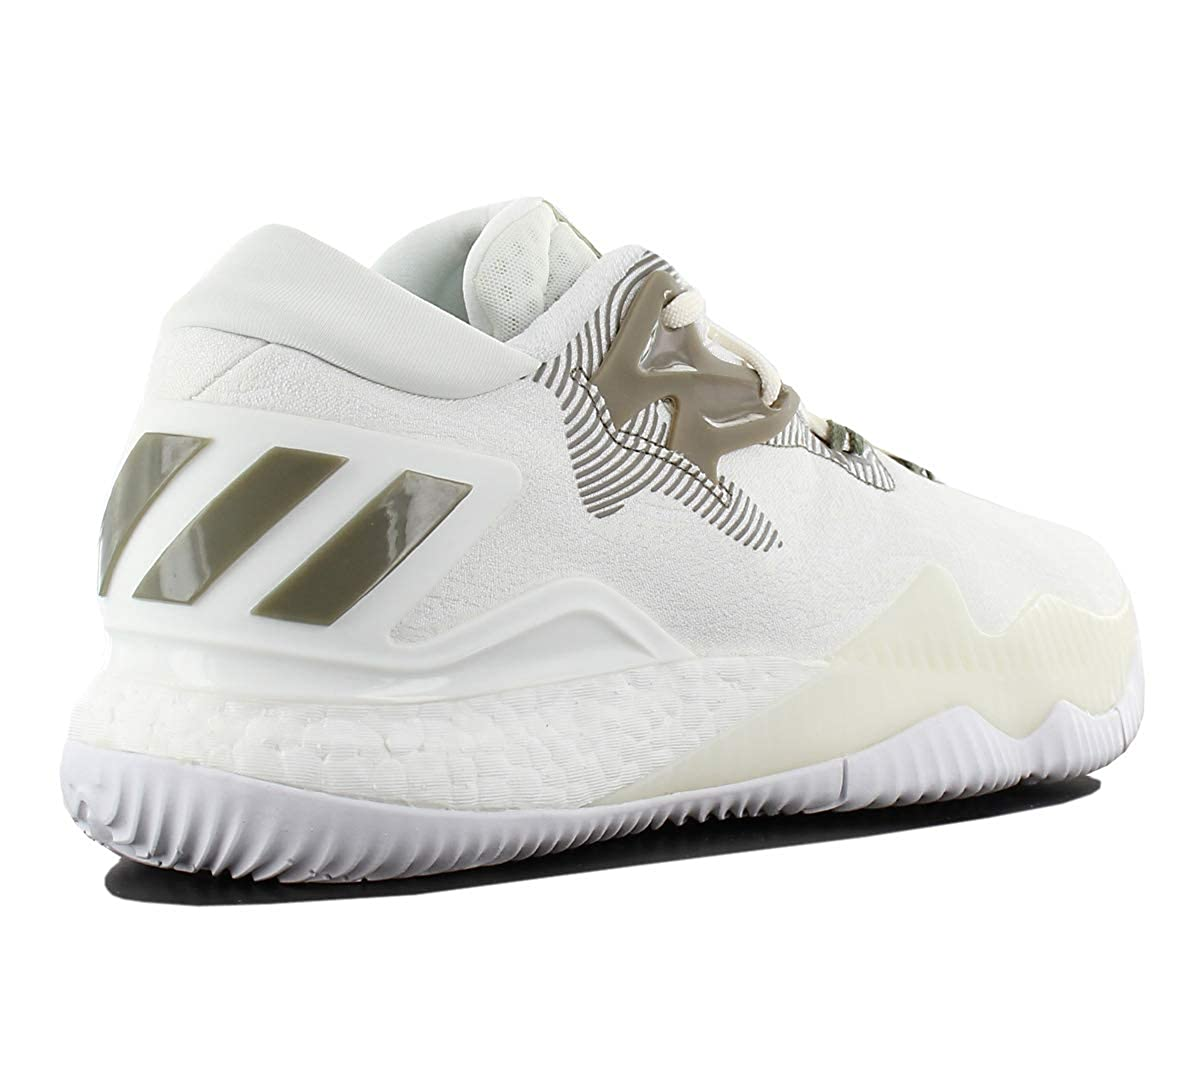 adidas Crazylight Boost Bassa 2016 BB8384 Sneaker: Amazon.it